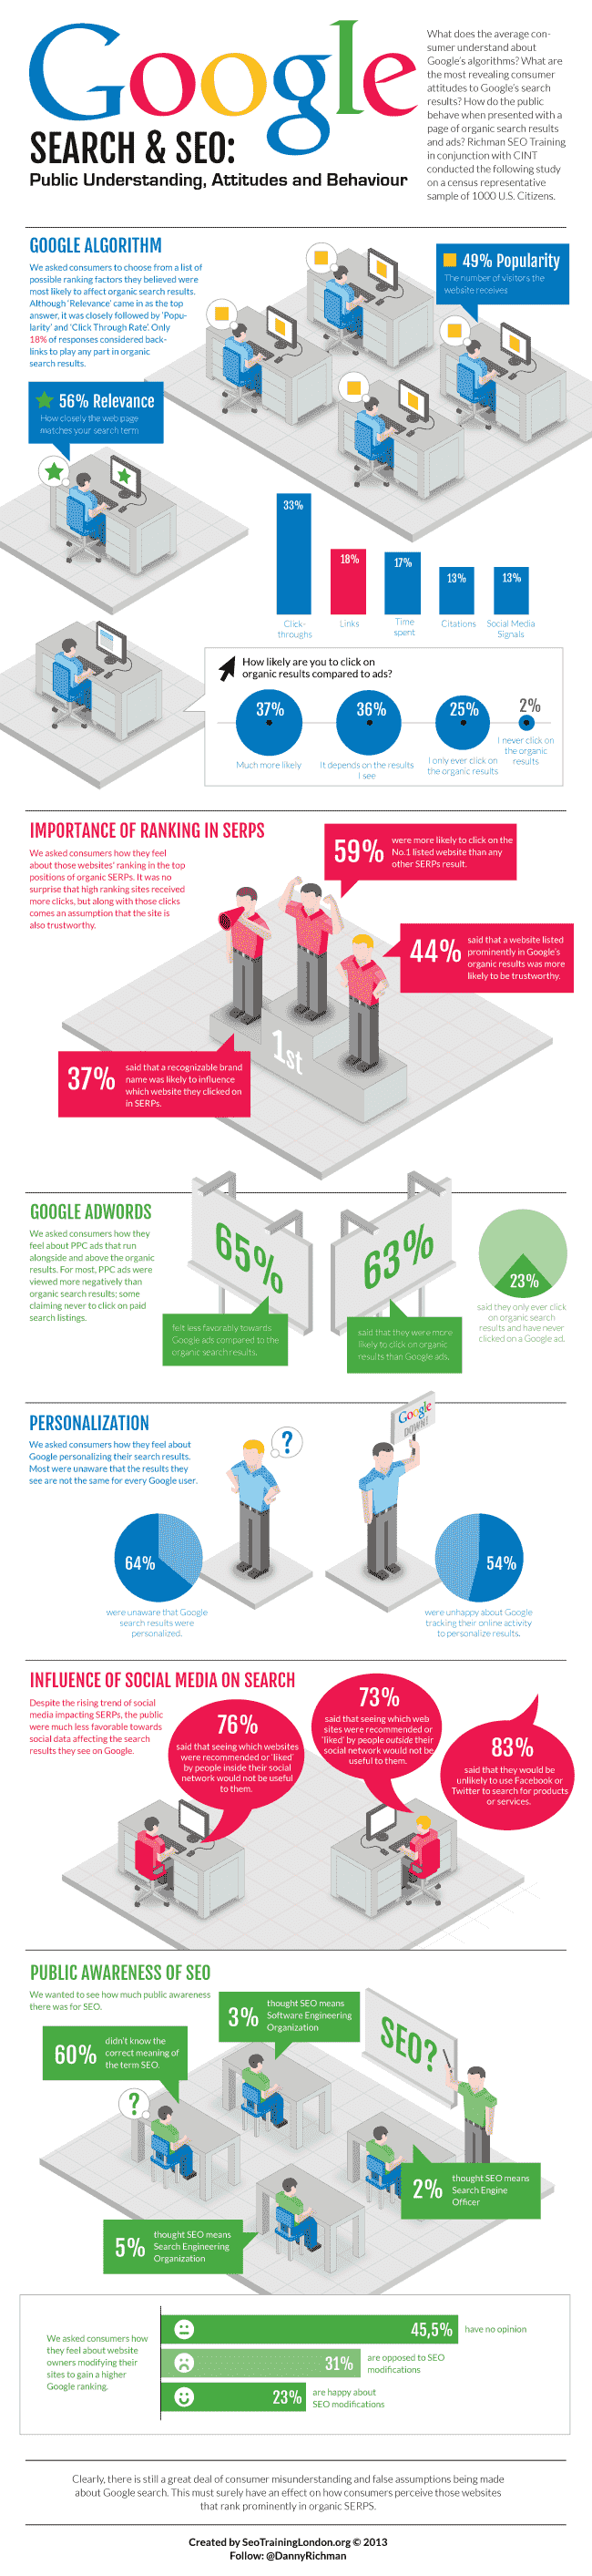 SEO Training: What do the Public Understand about Search? - An Infographic from